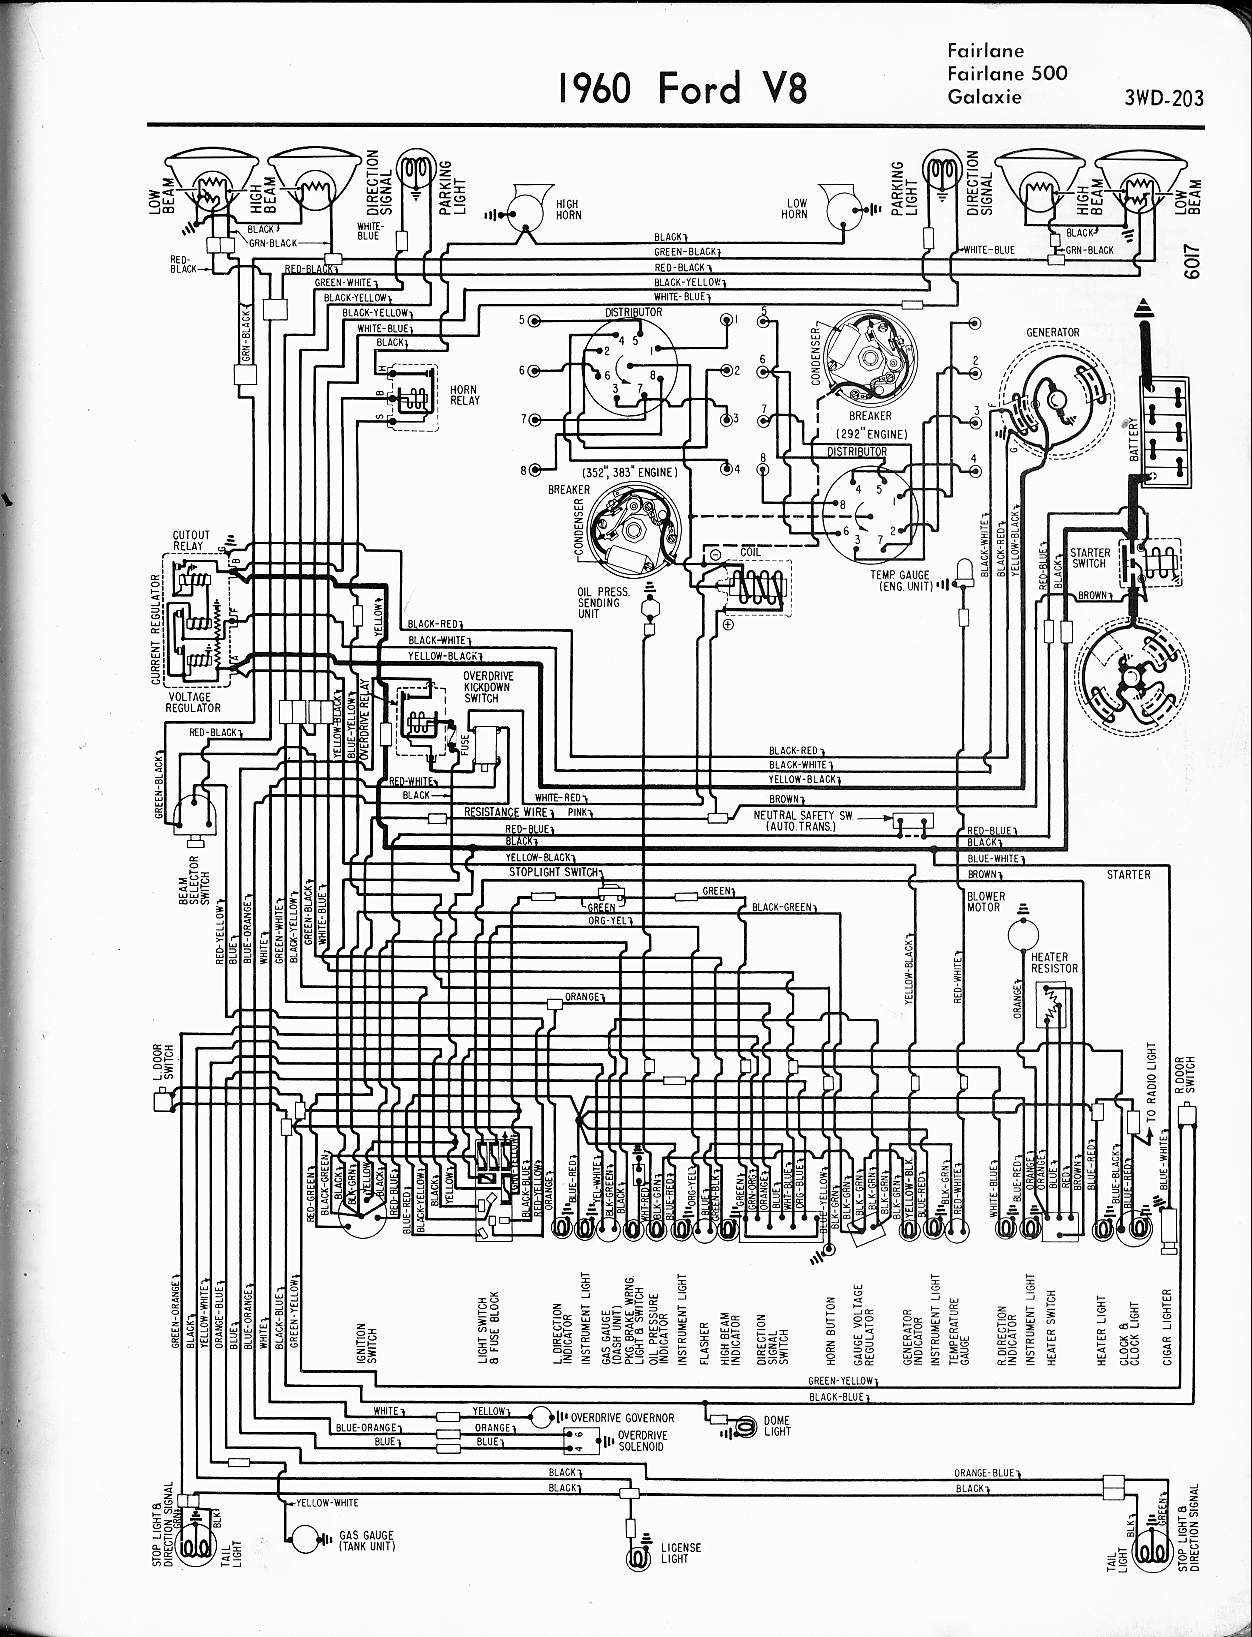 hight resolution of 1955 thunderbird fuse box wiring diagram1957 ford fuse box location wiring diagram1957 ford fuse box location